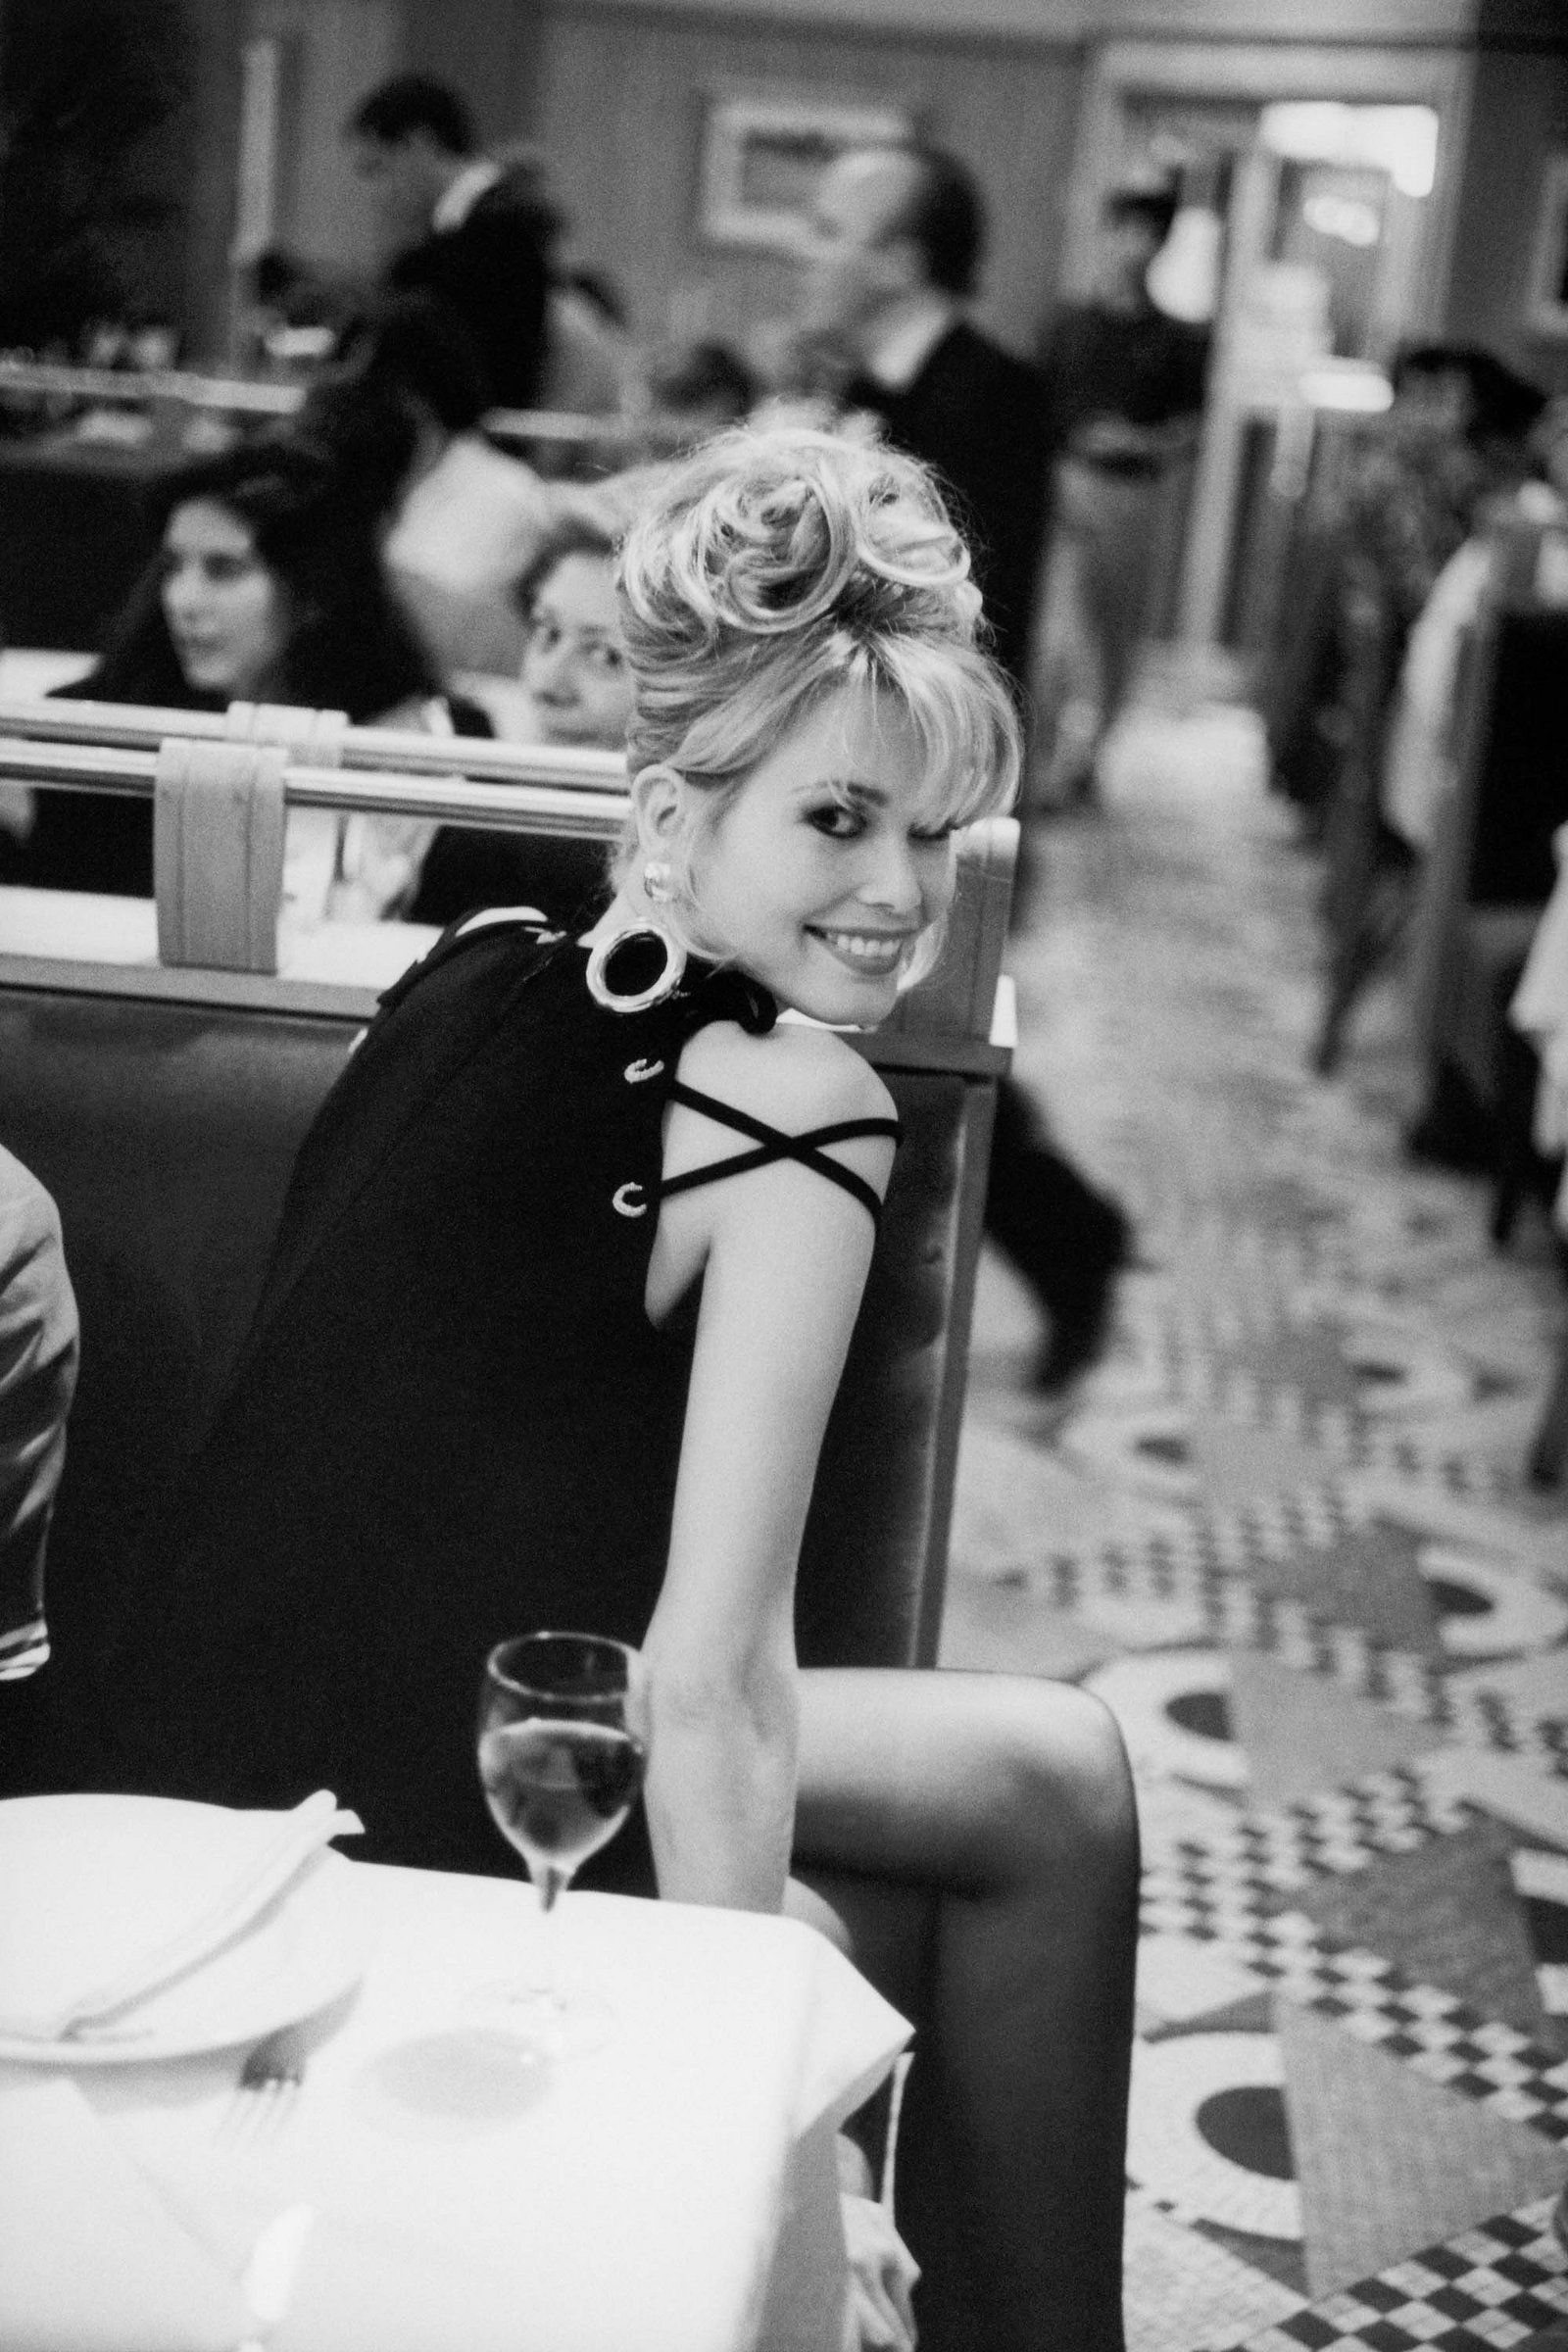 Claudia schiffer photographed by arthur elgort vogue september 1992 photography women fashion